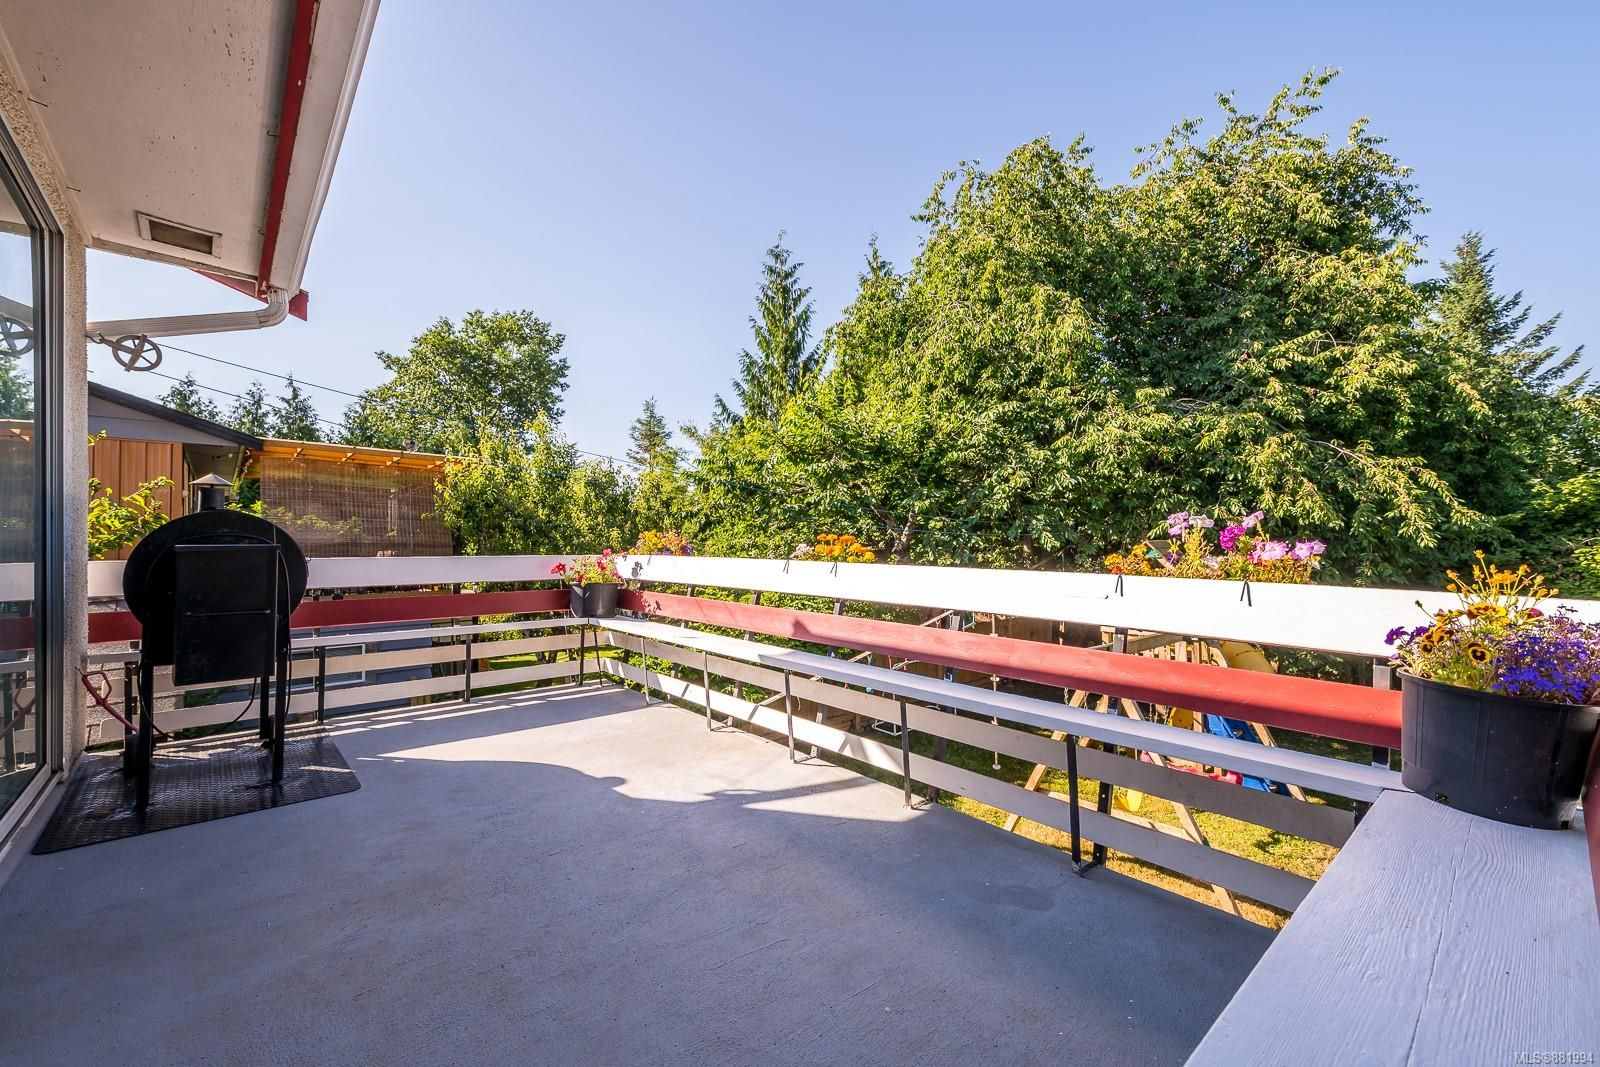 Photo 18: Photos: 1935 Fitzgerald Ave in : CV Courtenay City House for sale (Comox Valley)  : MLS®# 881994